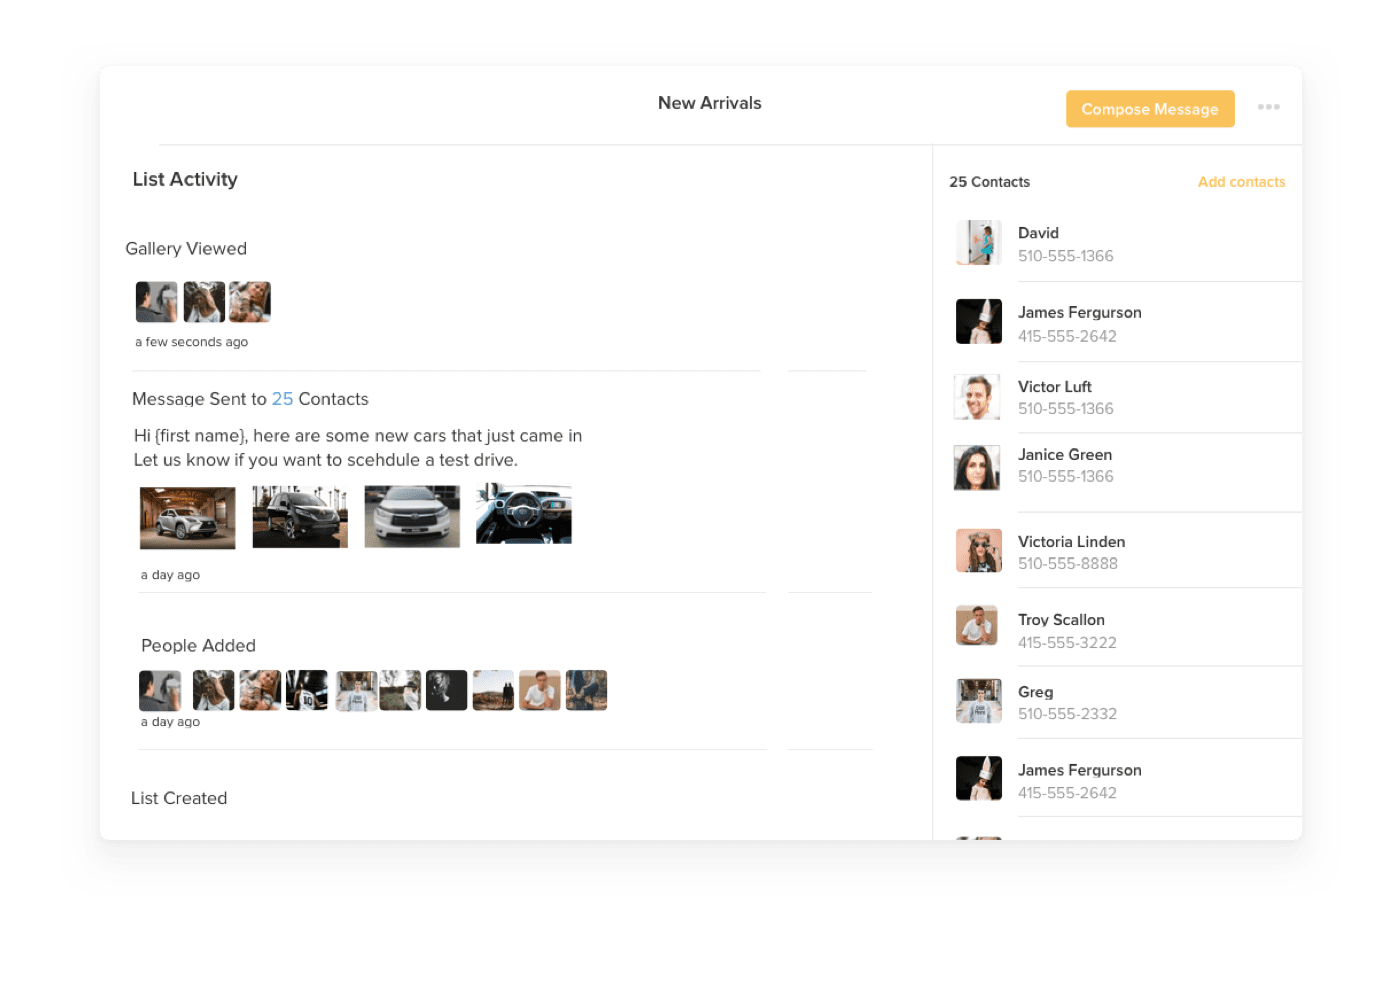 Contacts can be organized into lists for message targeting